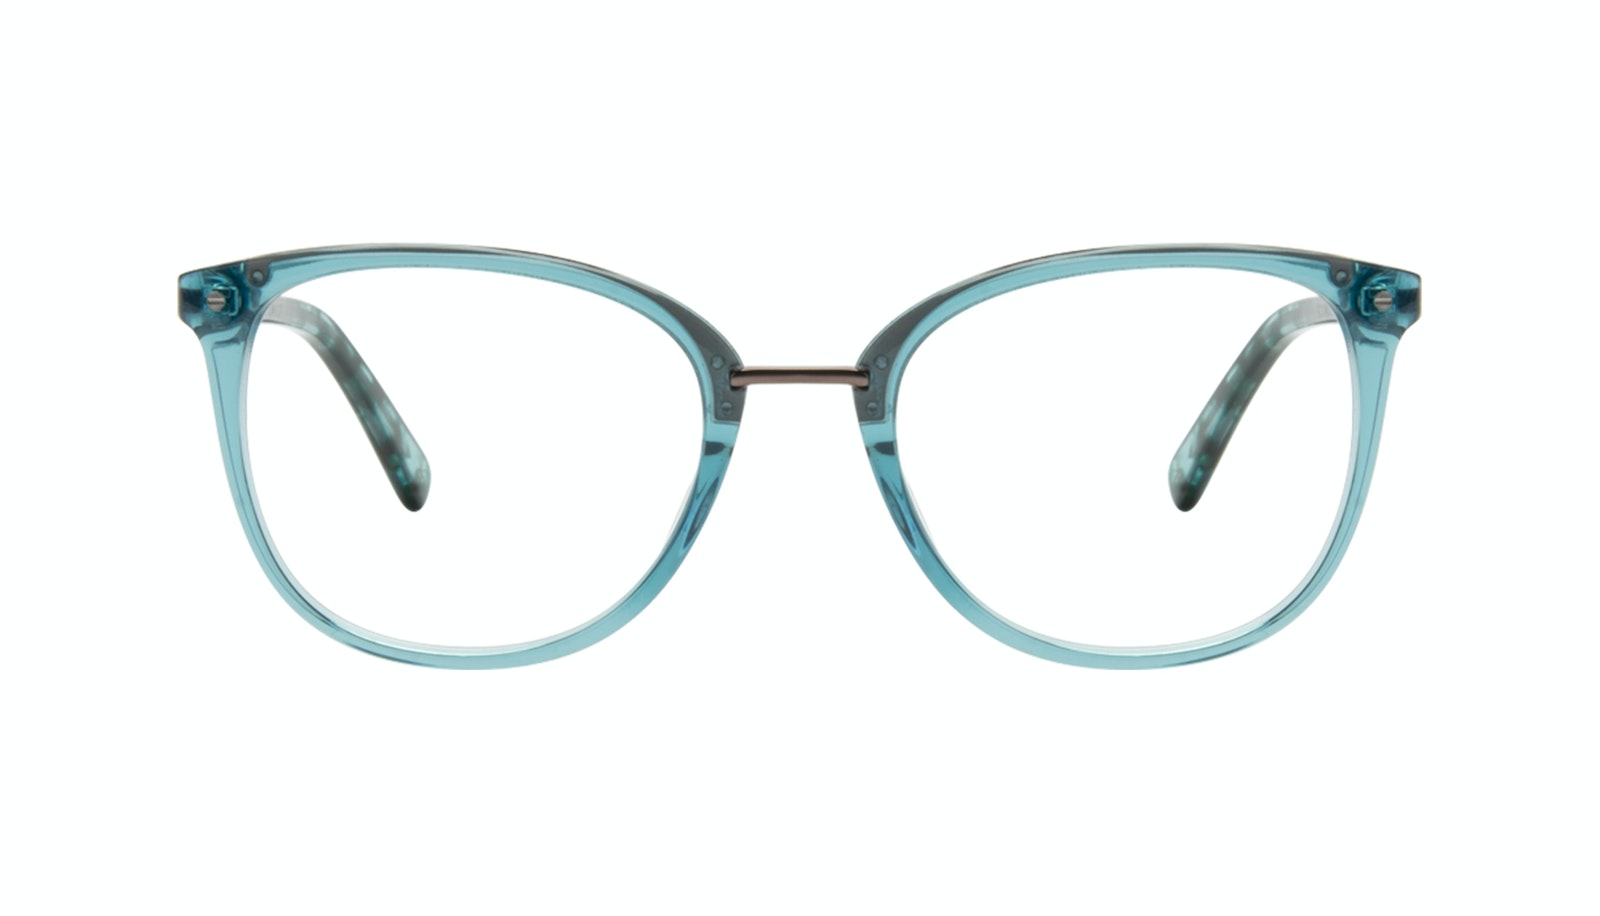 Affordable Fashion Glasses Square Round Eyeglasses Women Bella Teal